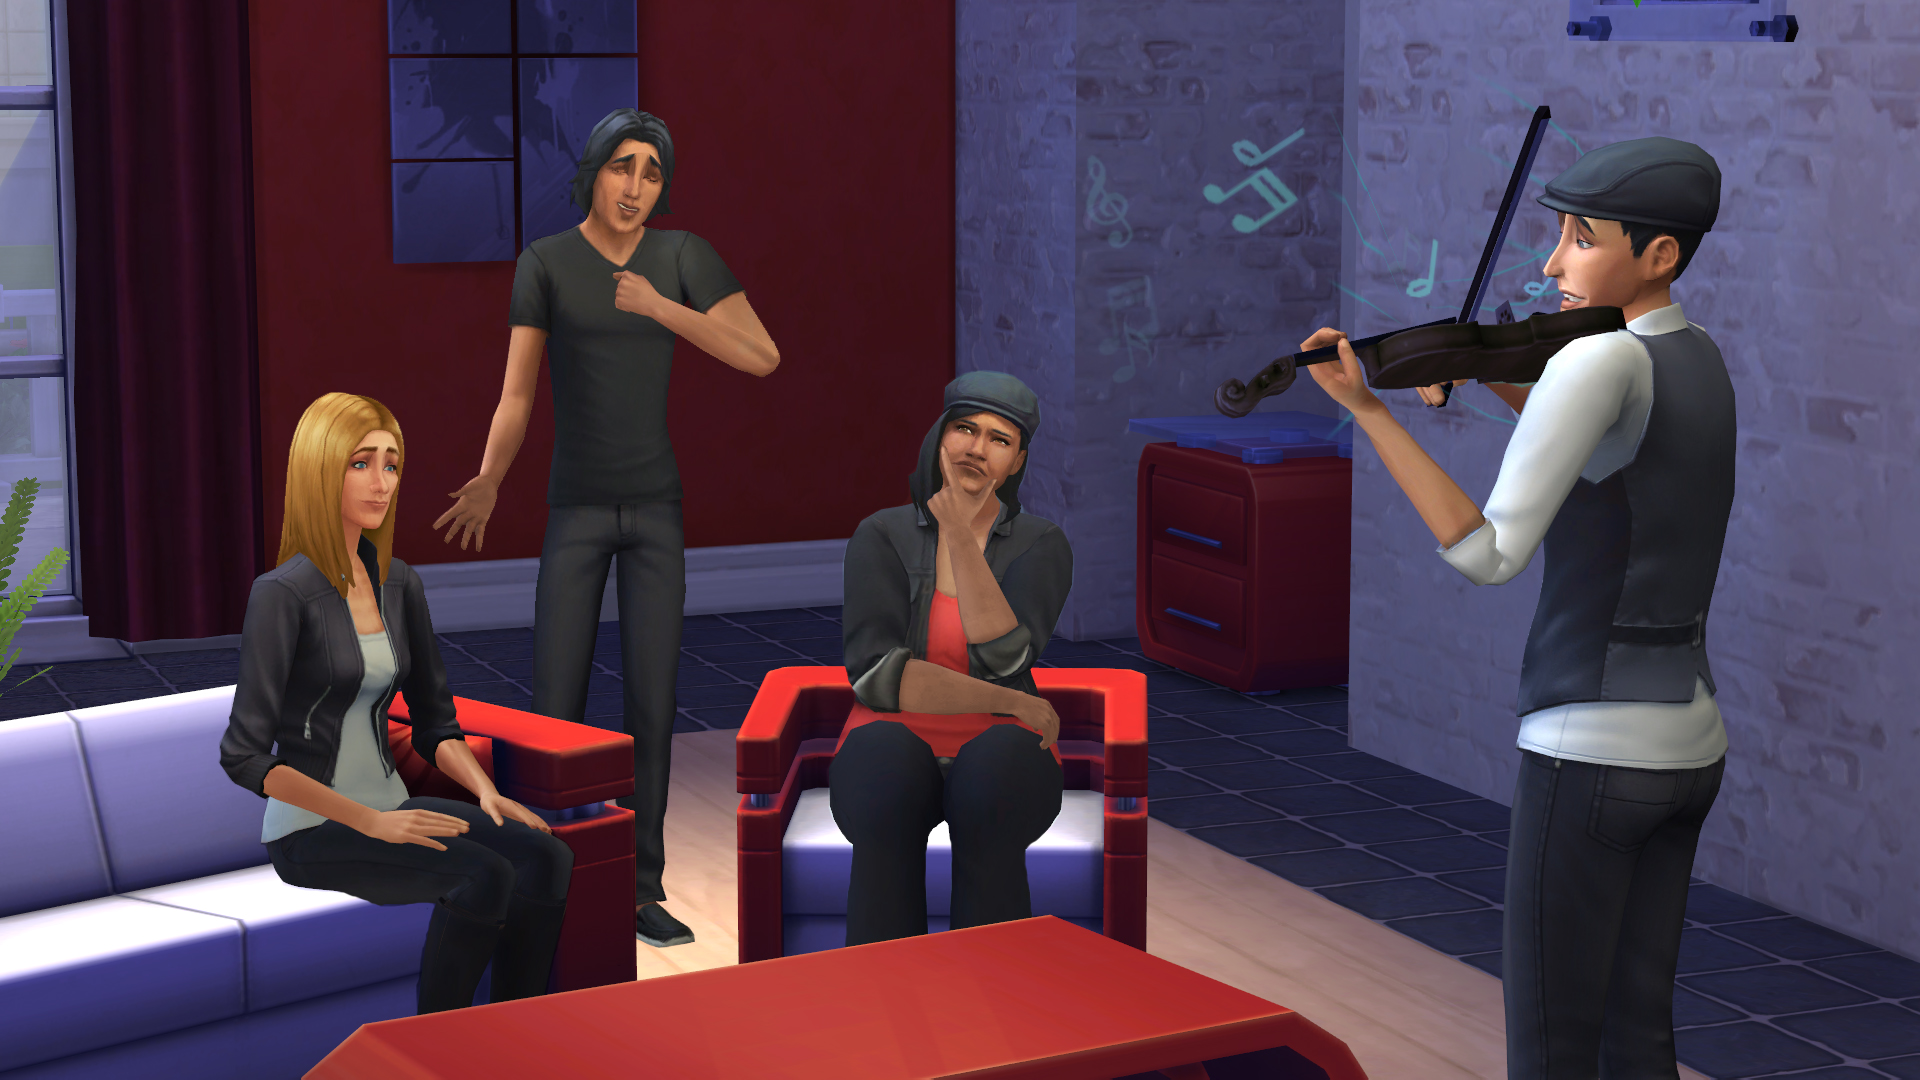 how to write articles in the sims 4